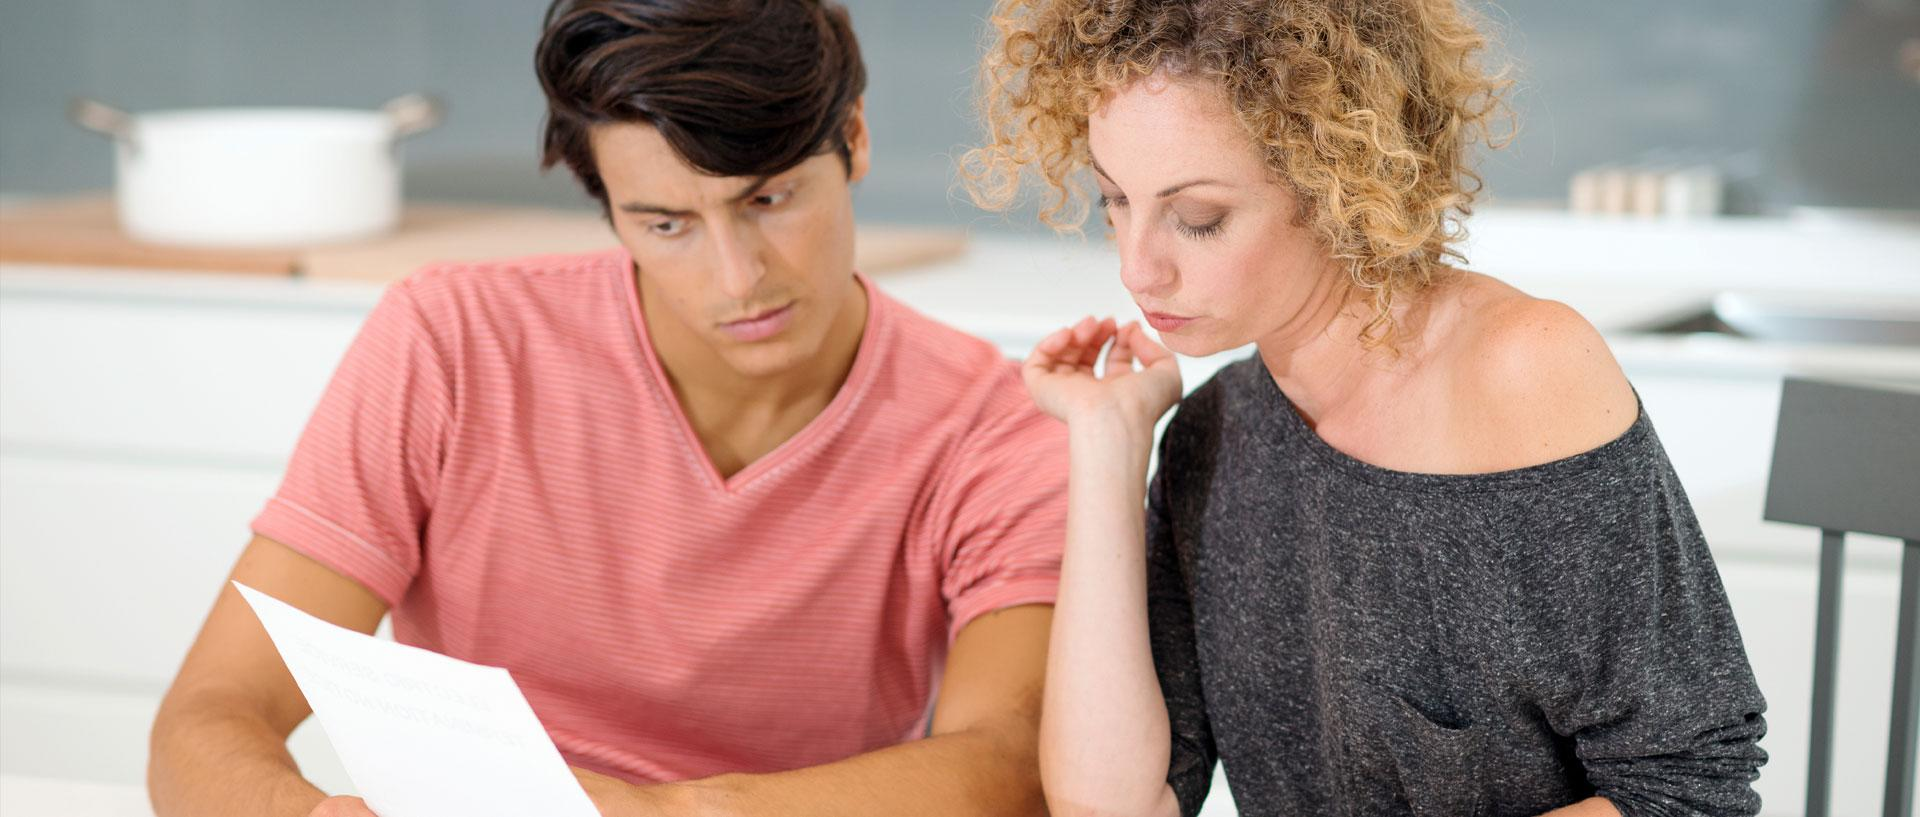 Financial Infidelity: How Much Do You Know About Your Partner's Finances?